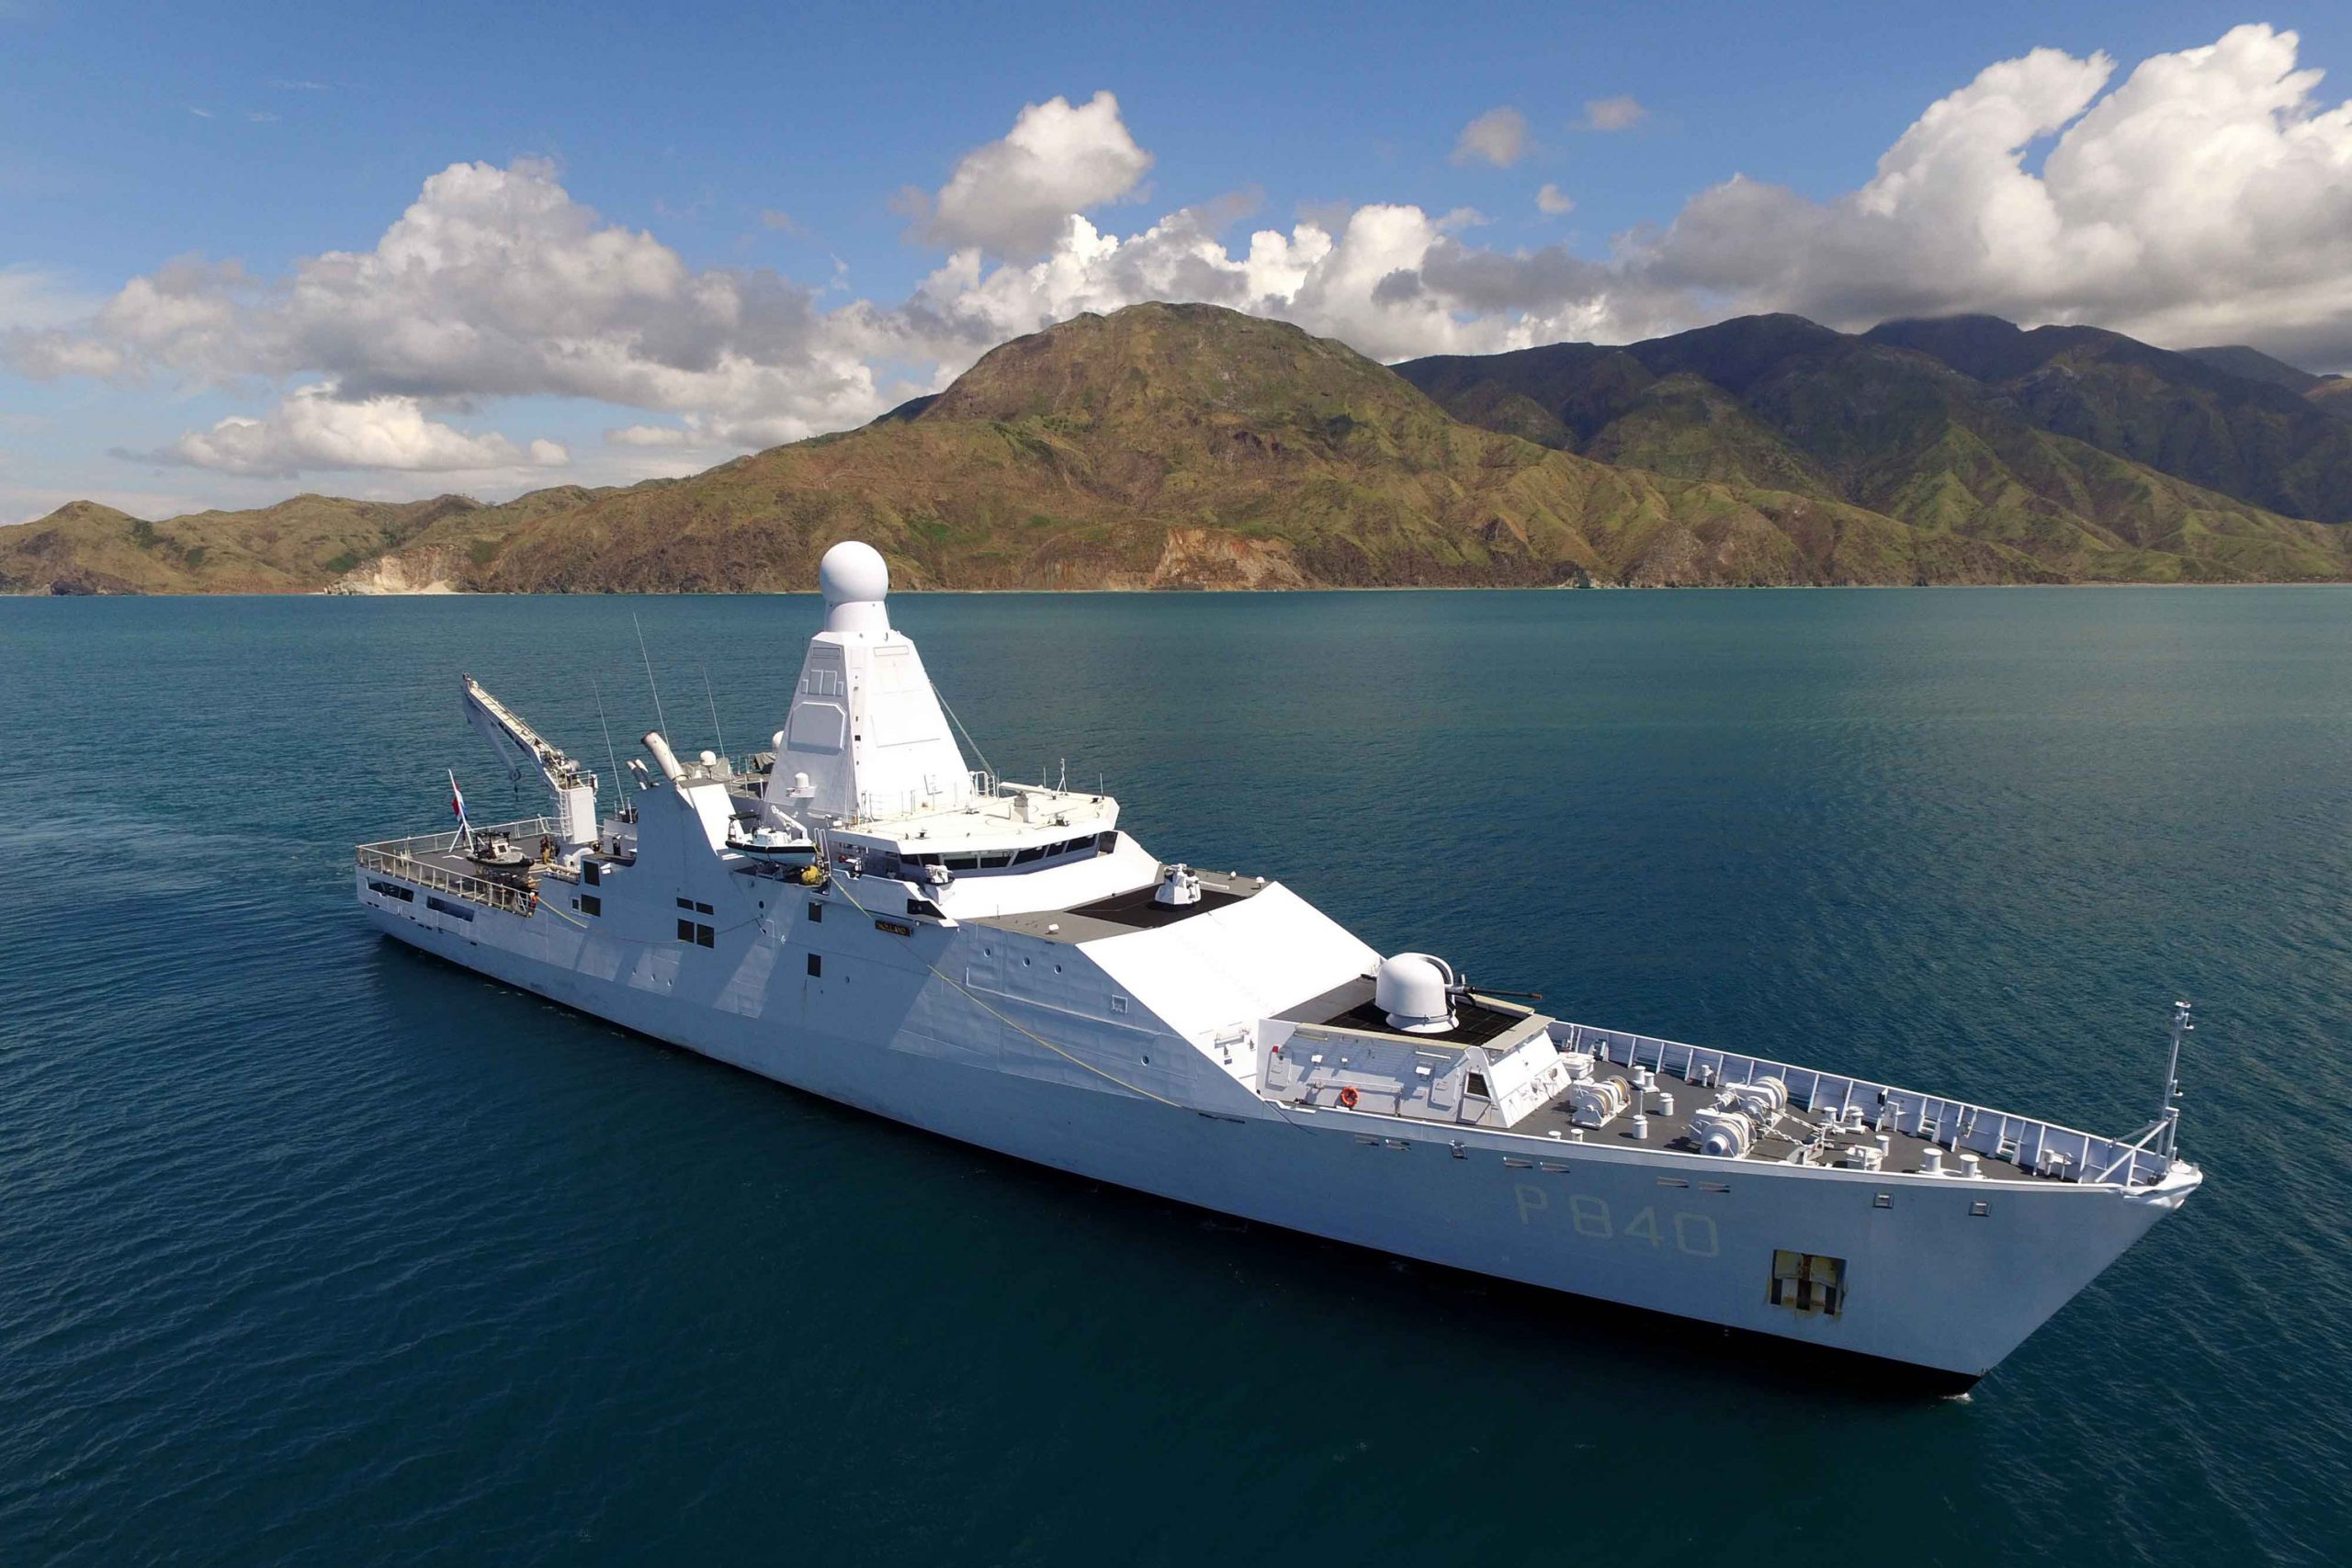 Royal Netherlands Navy opens fire on drug boats in Caribbean